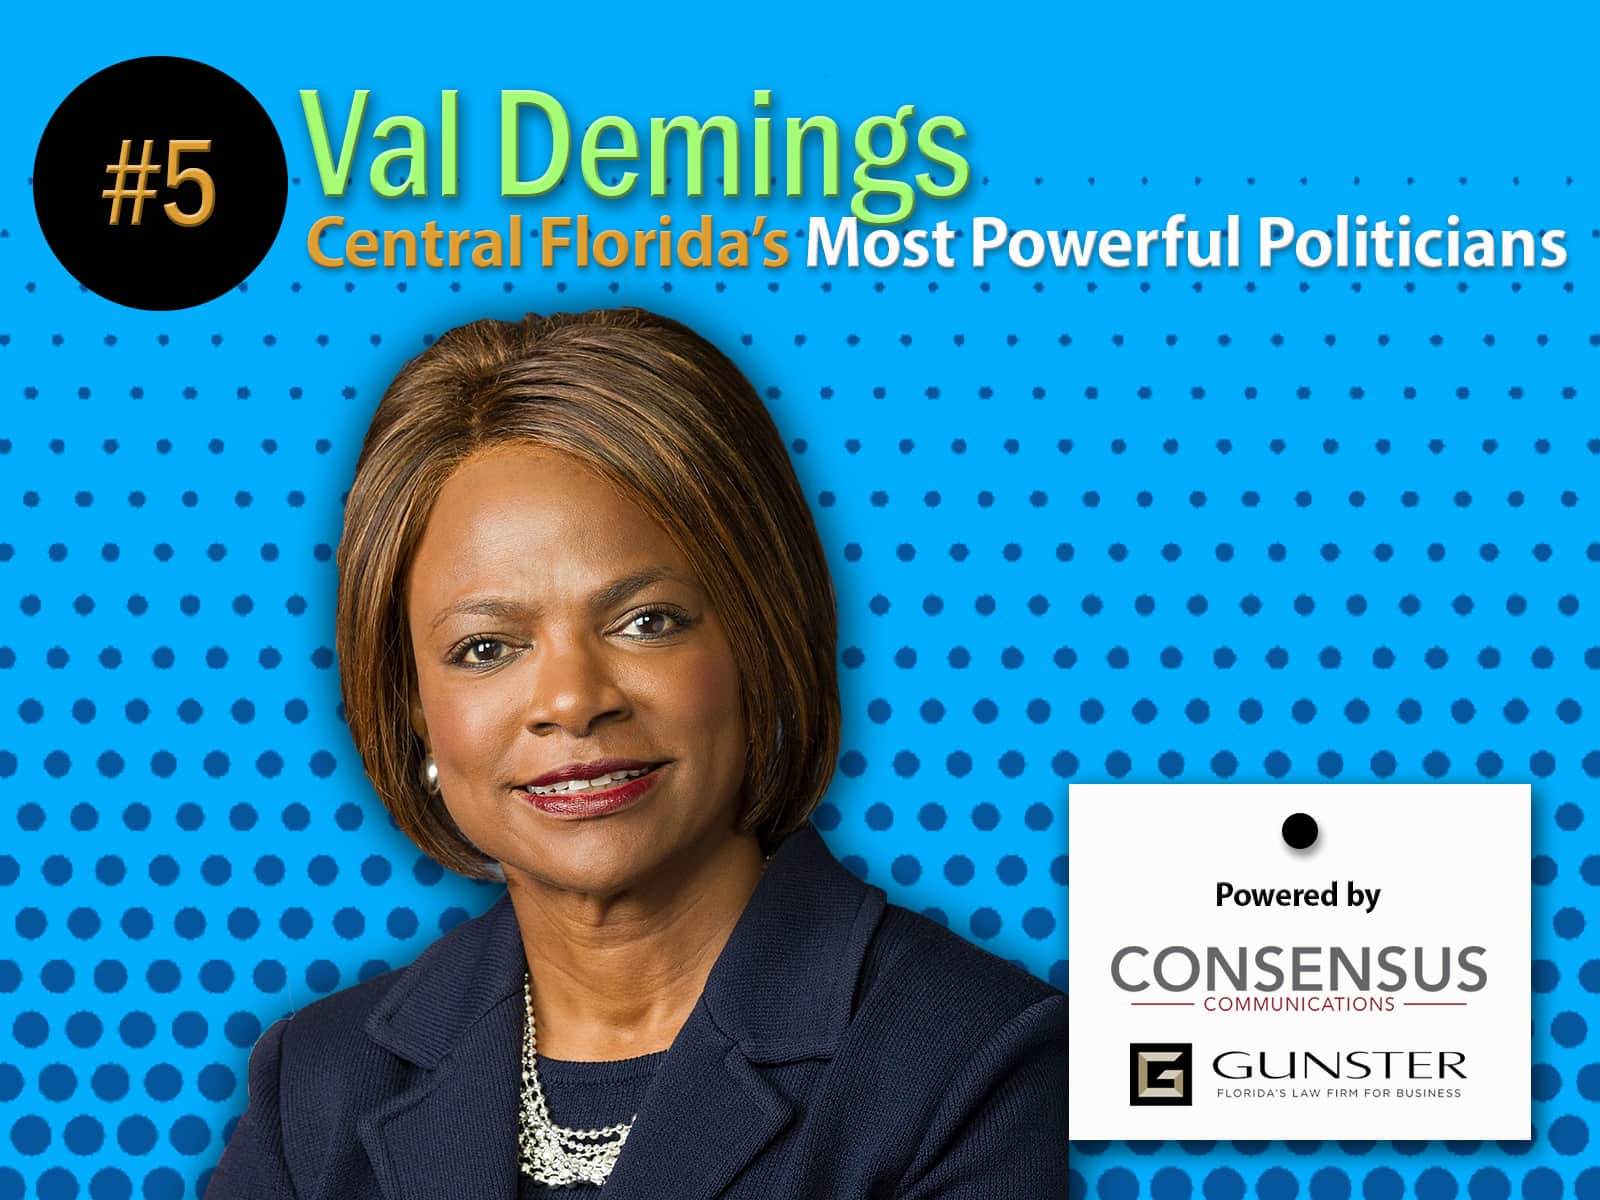 2019-CFMPP-Val-Demings-NEW.jpg